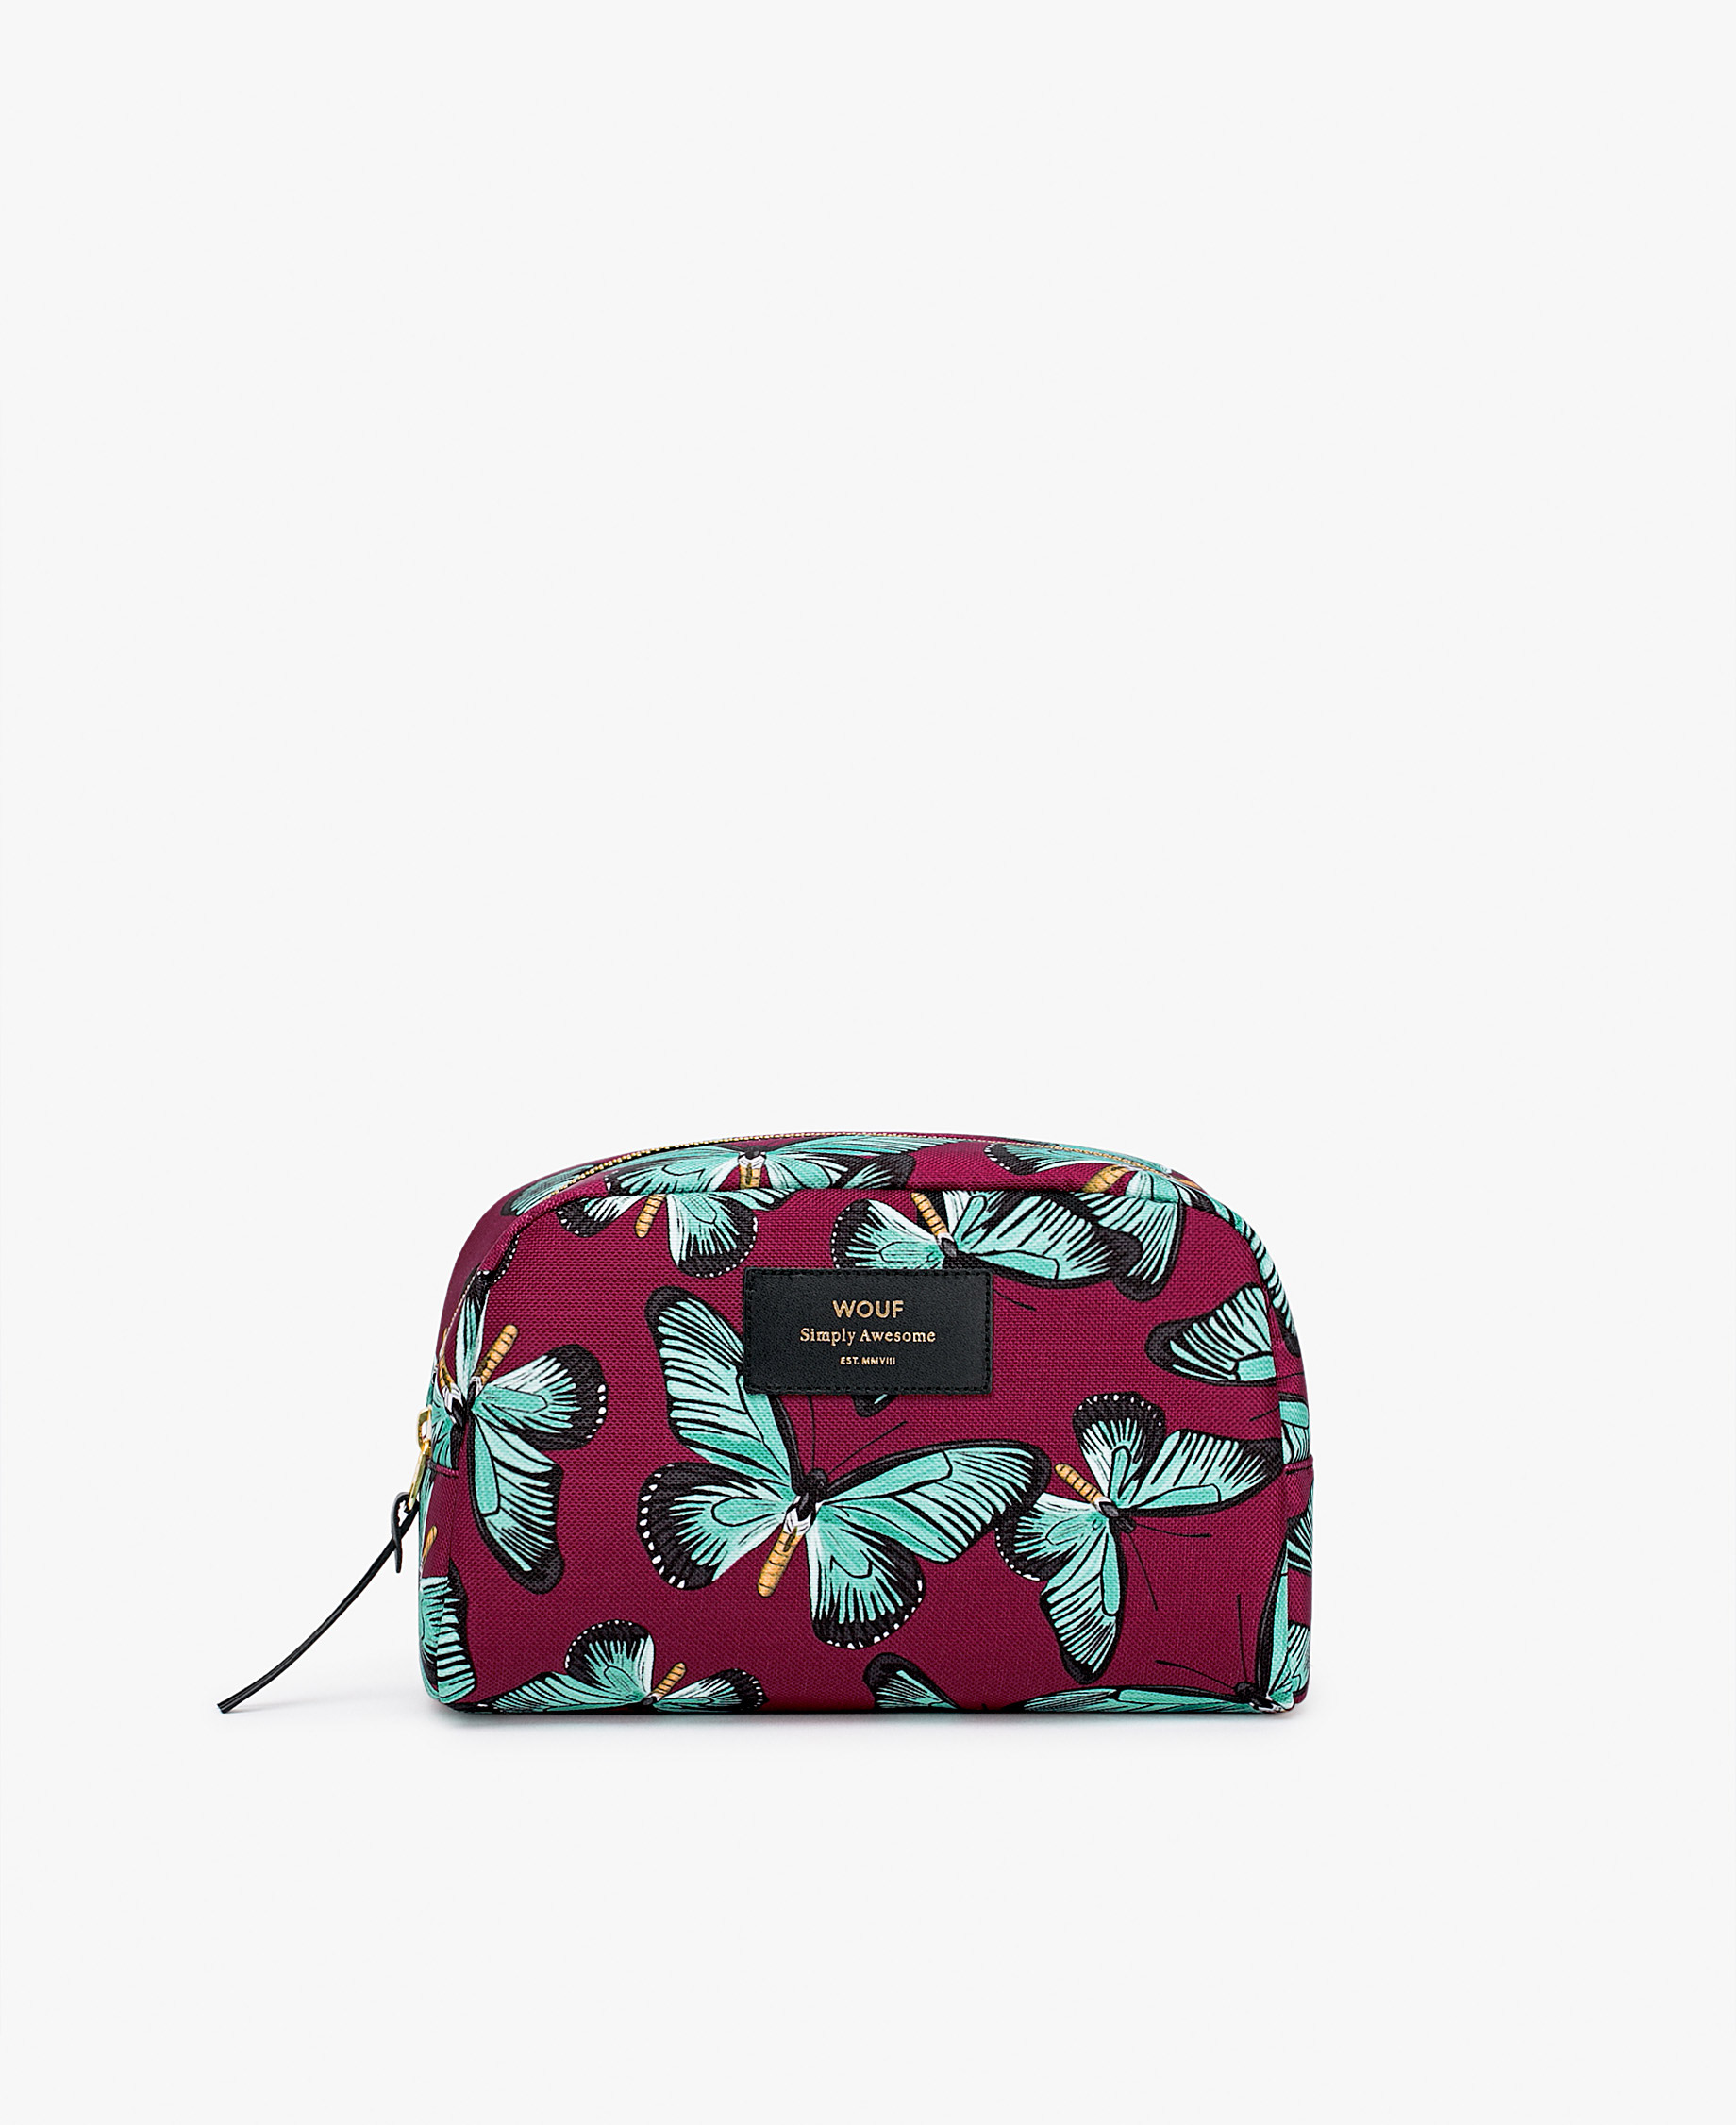 woman's burgundy toiletry bag with butterflies